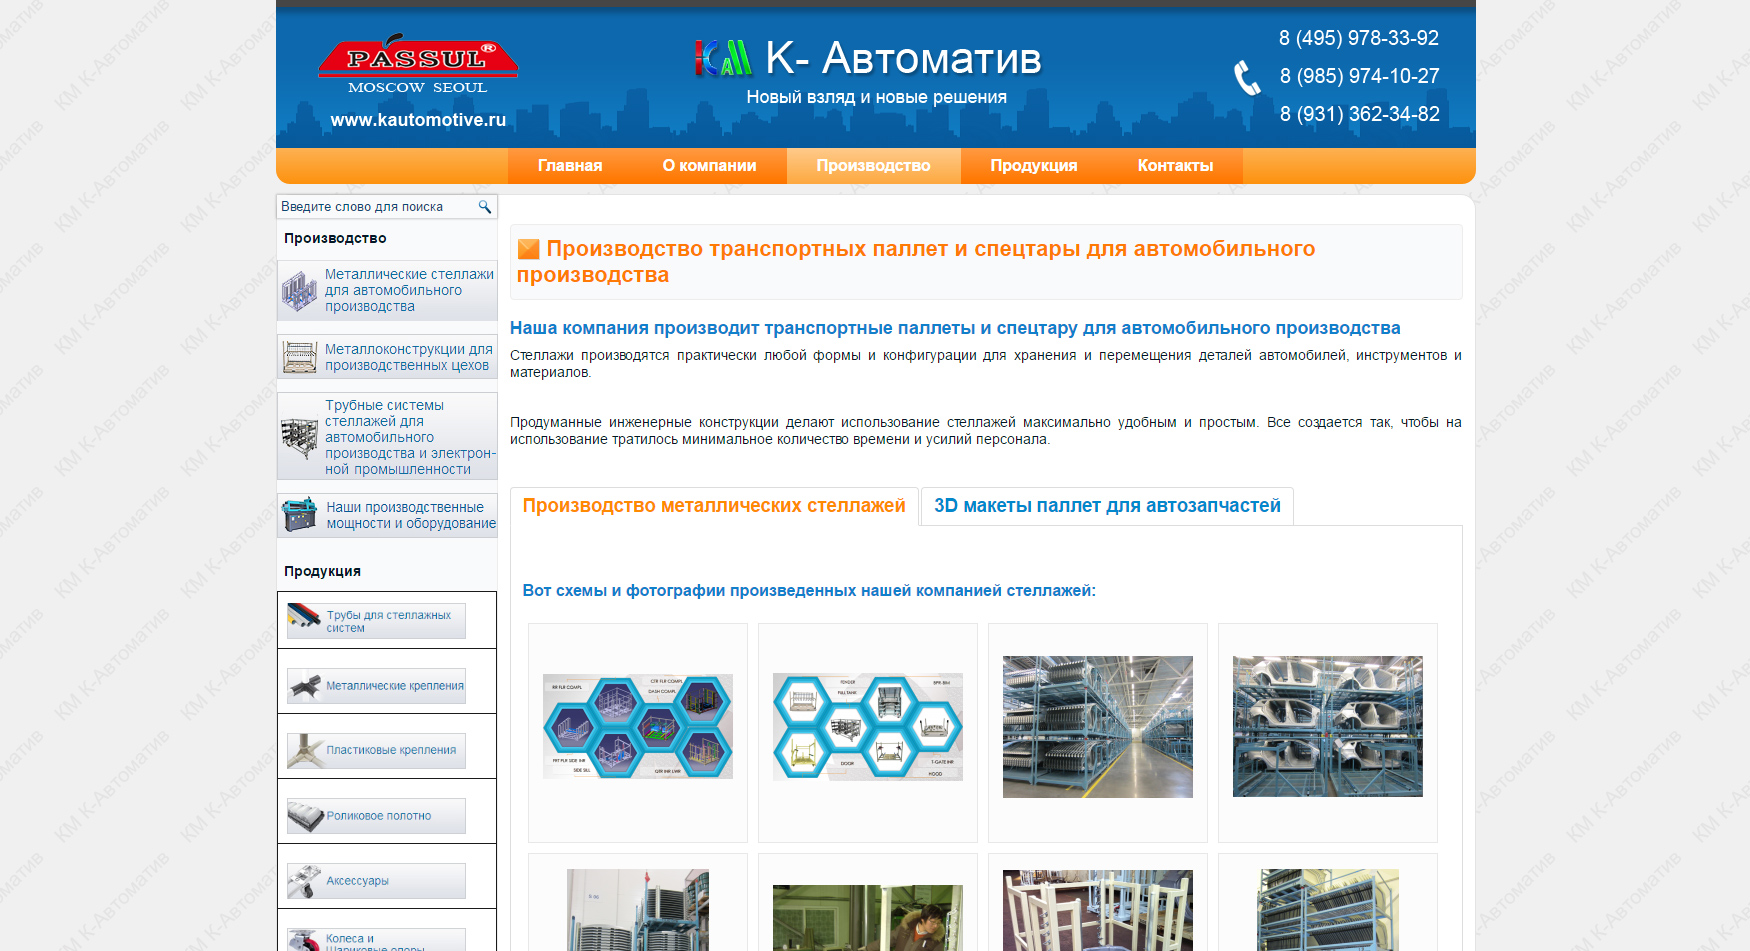 http://kautomotive.ru